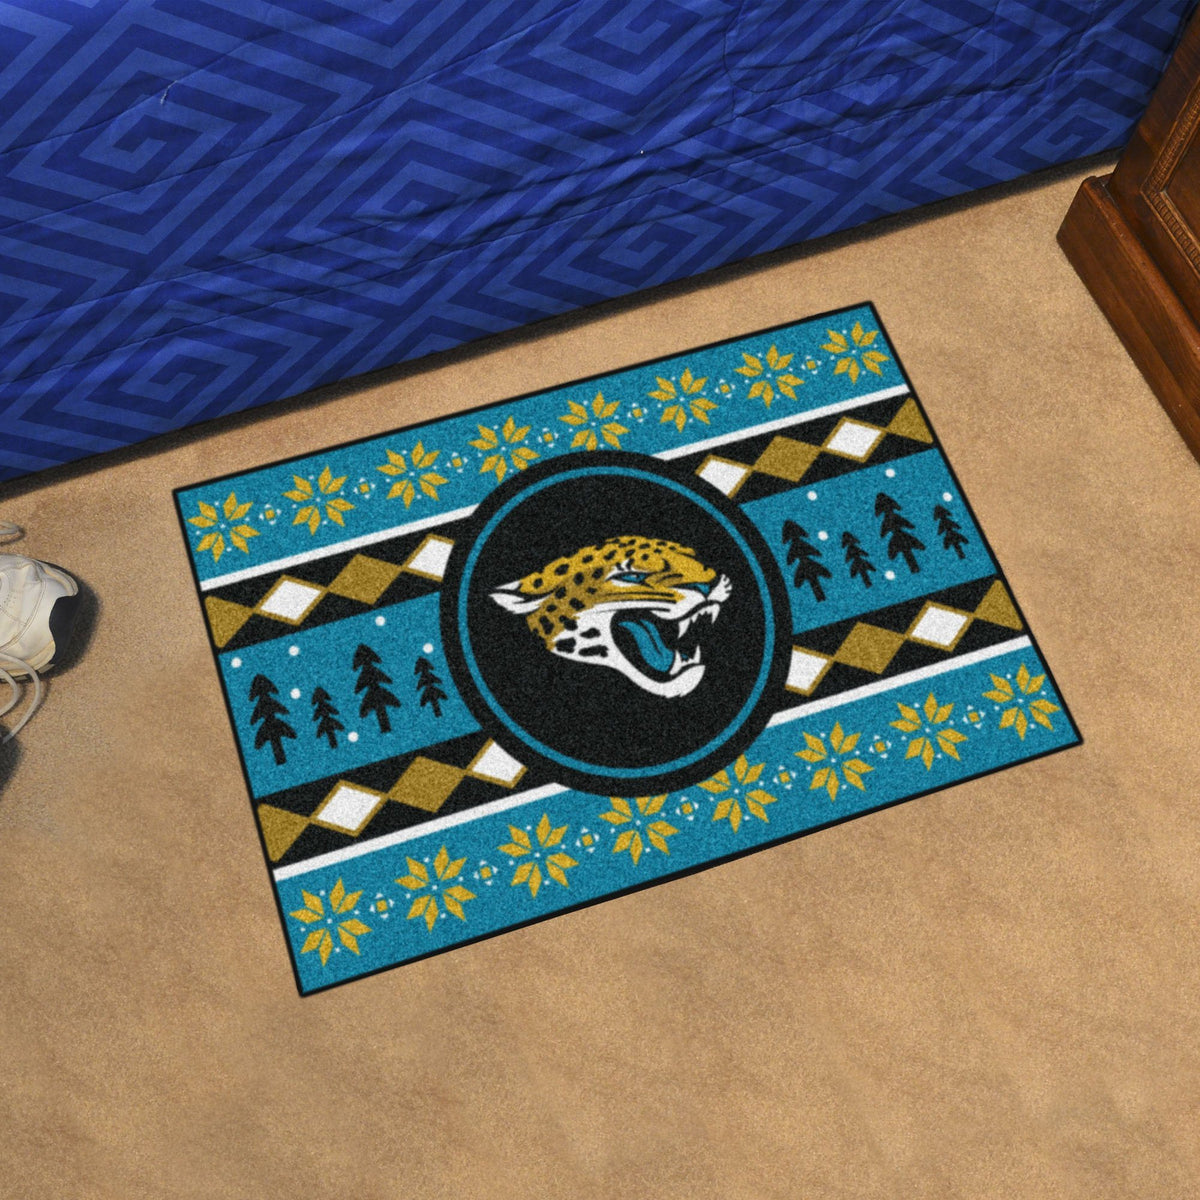 "NFL - Holiday Sweater Starter Mat, 19"" x 30"" NFL Mats, Rectangular Mats, Holiday Sweater Starter Mat, NFL, Home Fan Mats Jacksonville Jaguars"